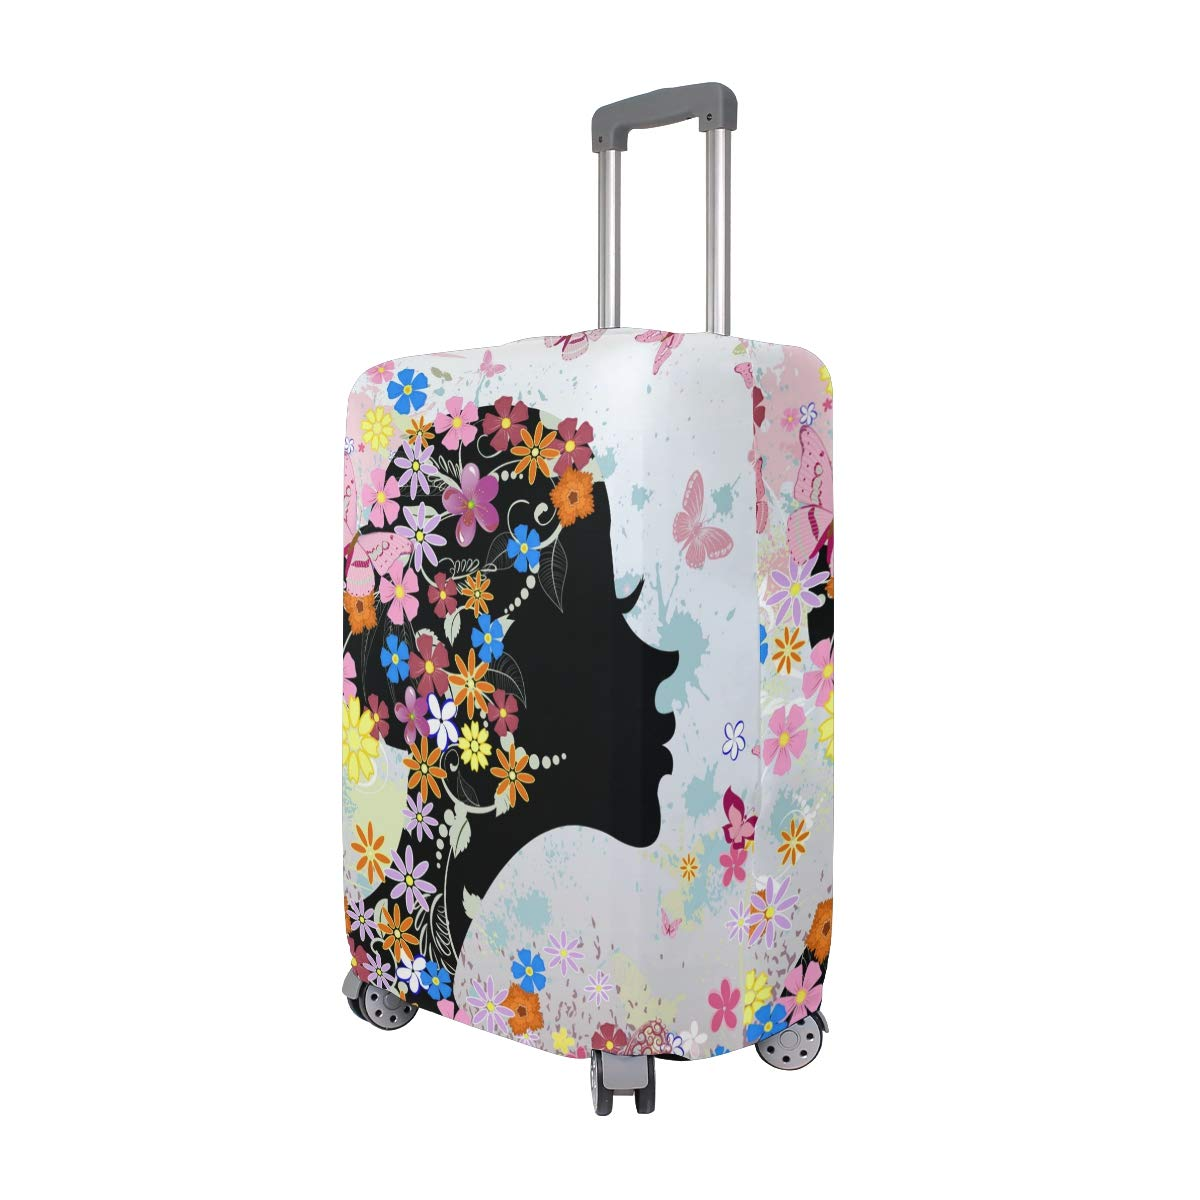 Baggage Covers Flower Girl Butterflies Pink Kiss Washable Protective Case